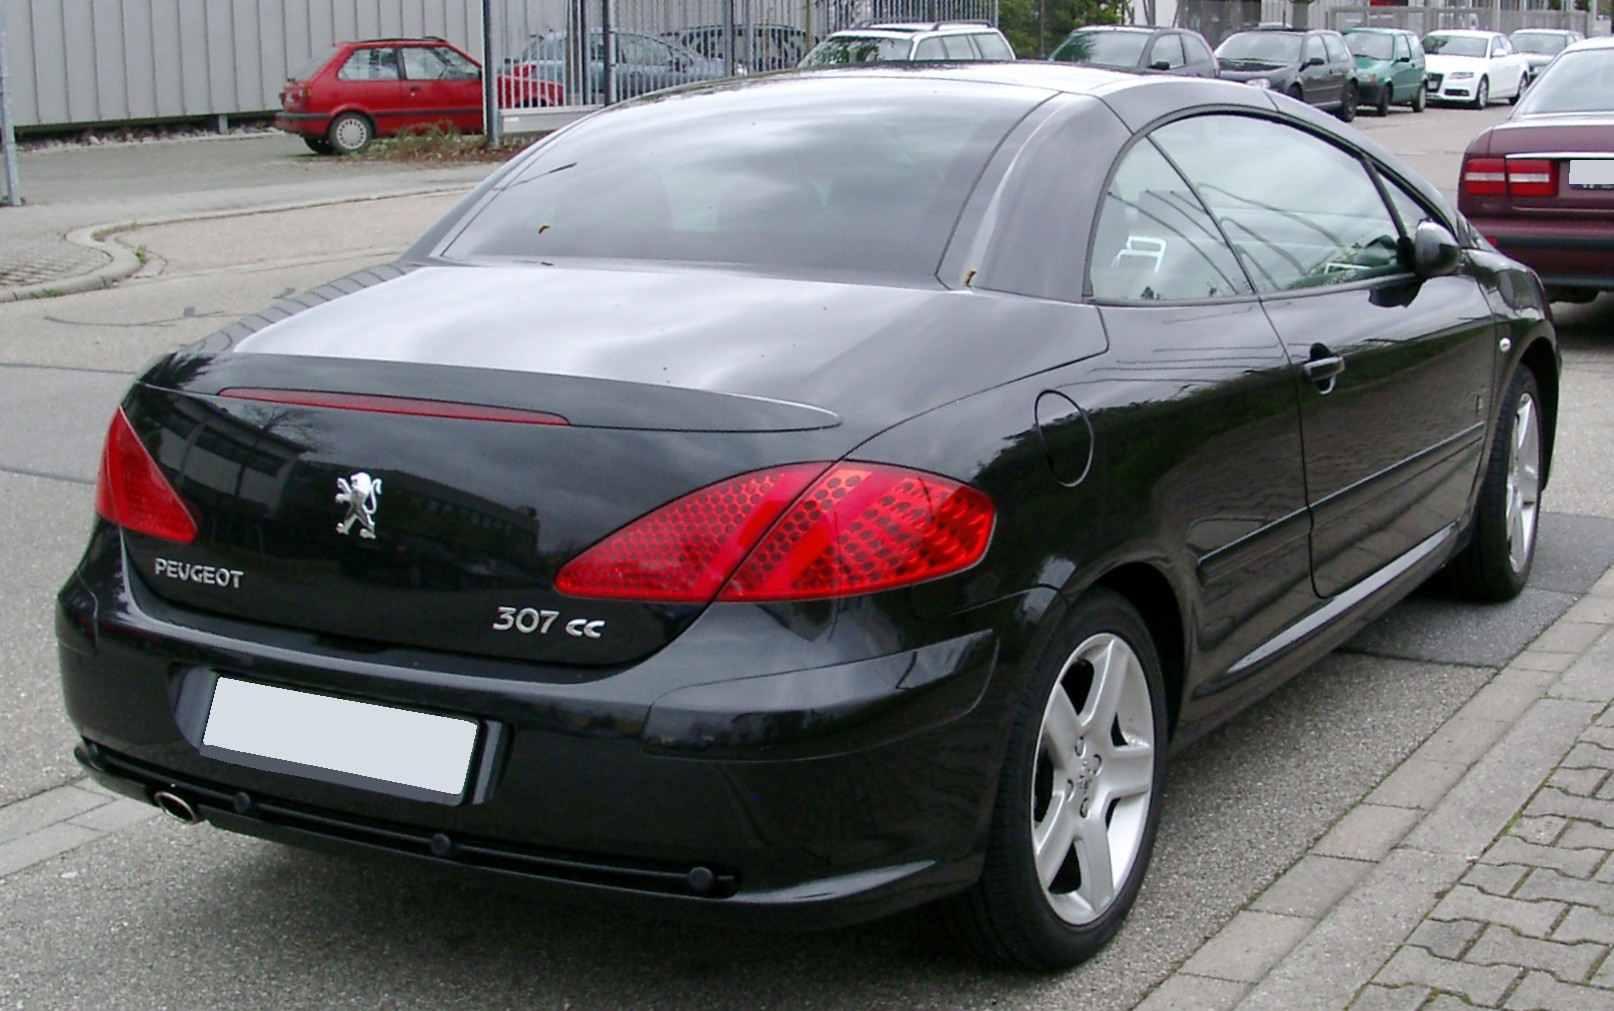 Peugeot 307 Cc Technical Details History Photos On